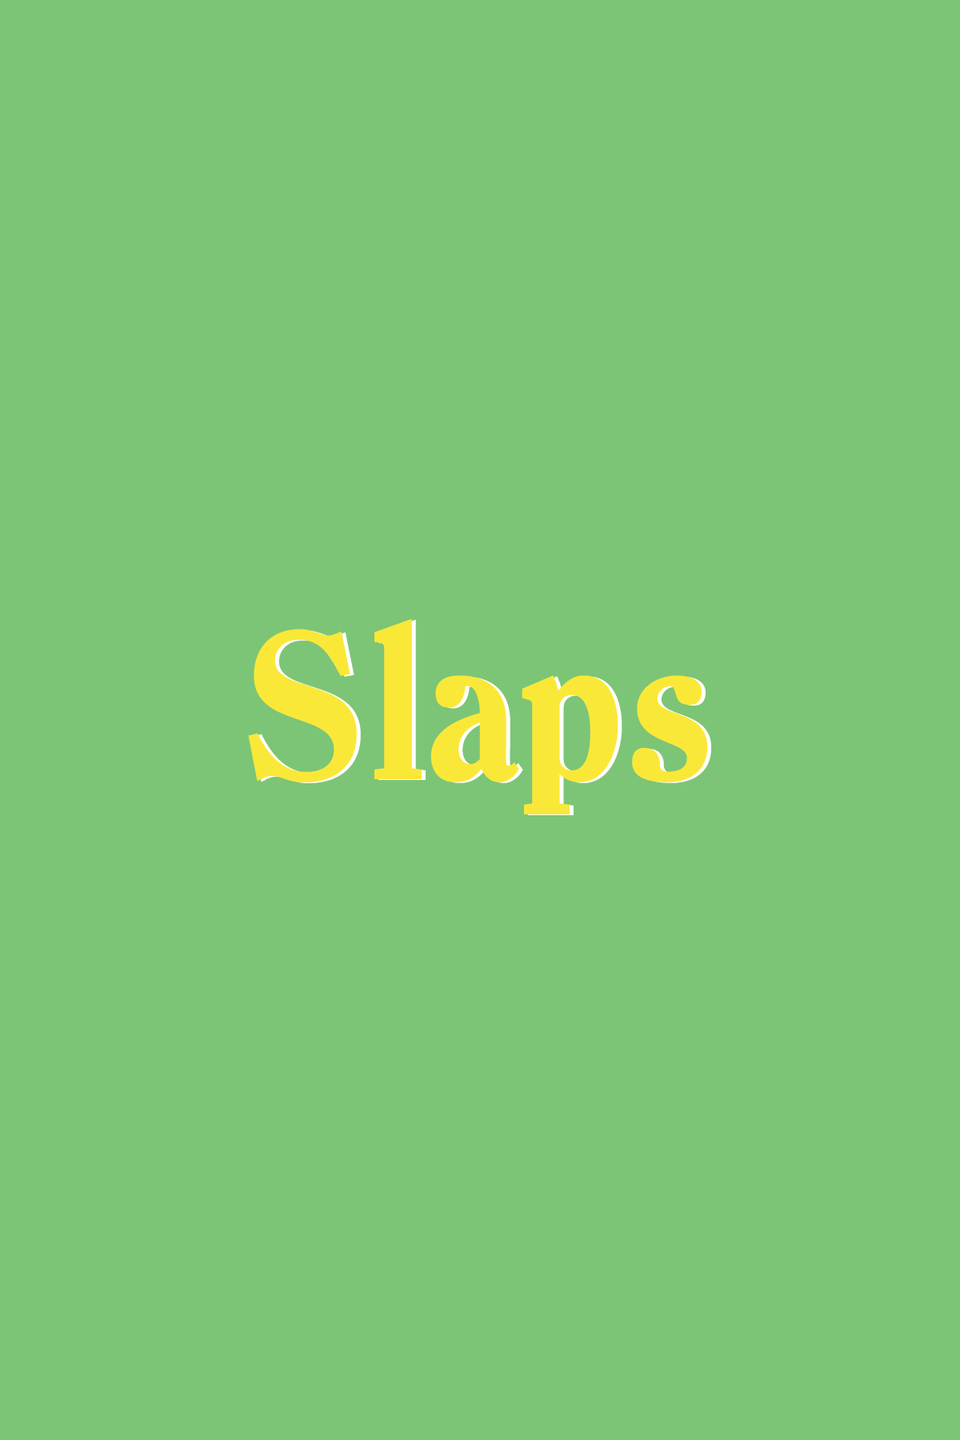 """<p>The good ol' dictionary often helps us better understand slang words today. According to <a href=""""https://www.merriam-webster.com/dictionary/slap"""" rel=""""nofollow noopener"""" target=""""_blank"""" data-ylk=""""slk:Merriam-Webster,"""" class=""""link rapid-noclick-resp"""">Merriam-Webster,</a> to slap is to """"strike sharply with or as if with the open hand,"""" so the word is now colloquially used to describe something—a song, your meal, new shoes, <em>anything</em>—that strikes you as good, that's impressive. Used in a sentence. <a href=""""https://www.oprahdaily.com/life/food/a29473786/oprah-plant-based-diet-plan/"""" rel=""""nofollow noopener"""" target=""""_blank"""" data-ylk=""""slk:This new recipe from Oprah's plant-based diet slaps"""" class=""""link rapid-noclick-resp"""">This new recipe from Oprah's plant-based diet <em>slaps</em></a><em>.</em></p>"""